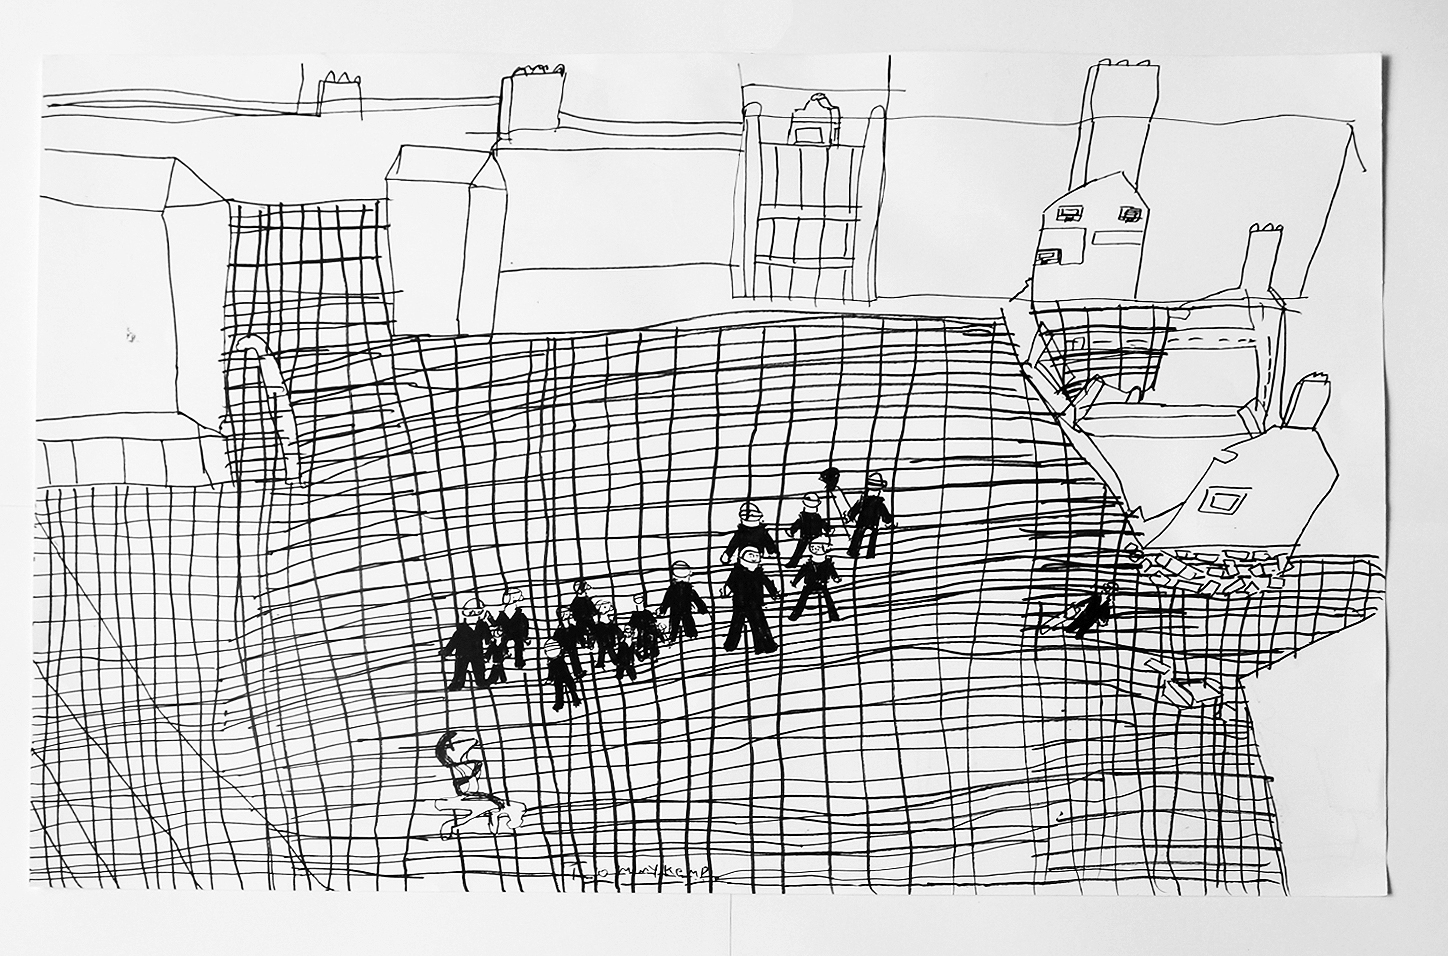 Artwork of the Week – 'Untitled', pen & ink on paper by Tommy Kemp